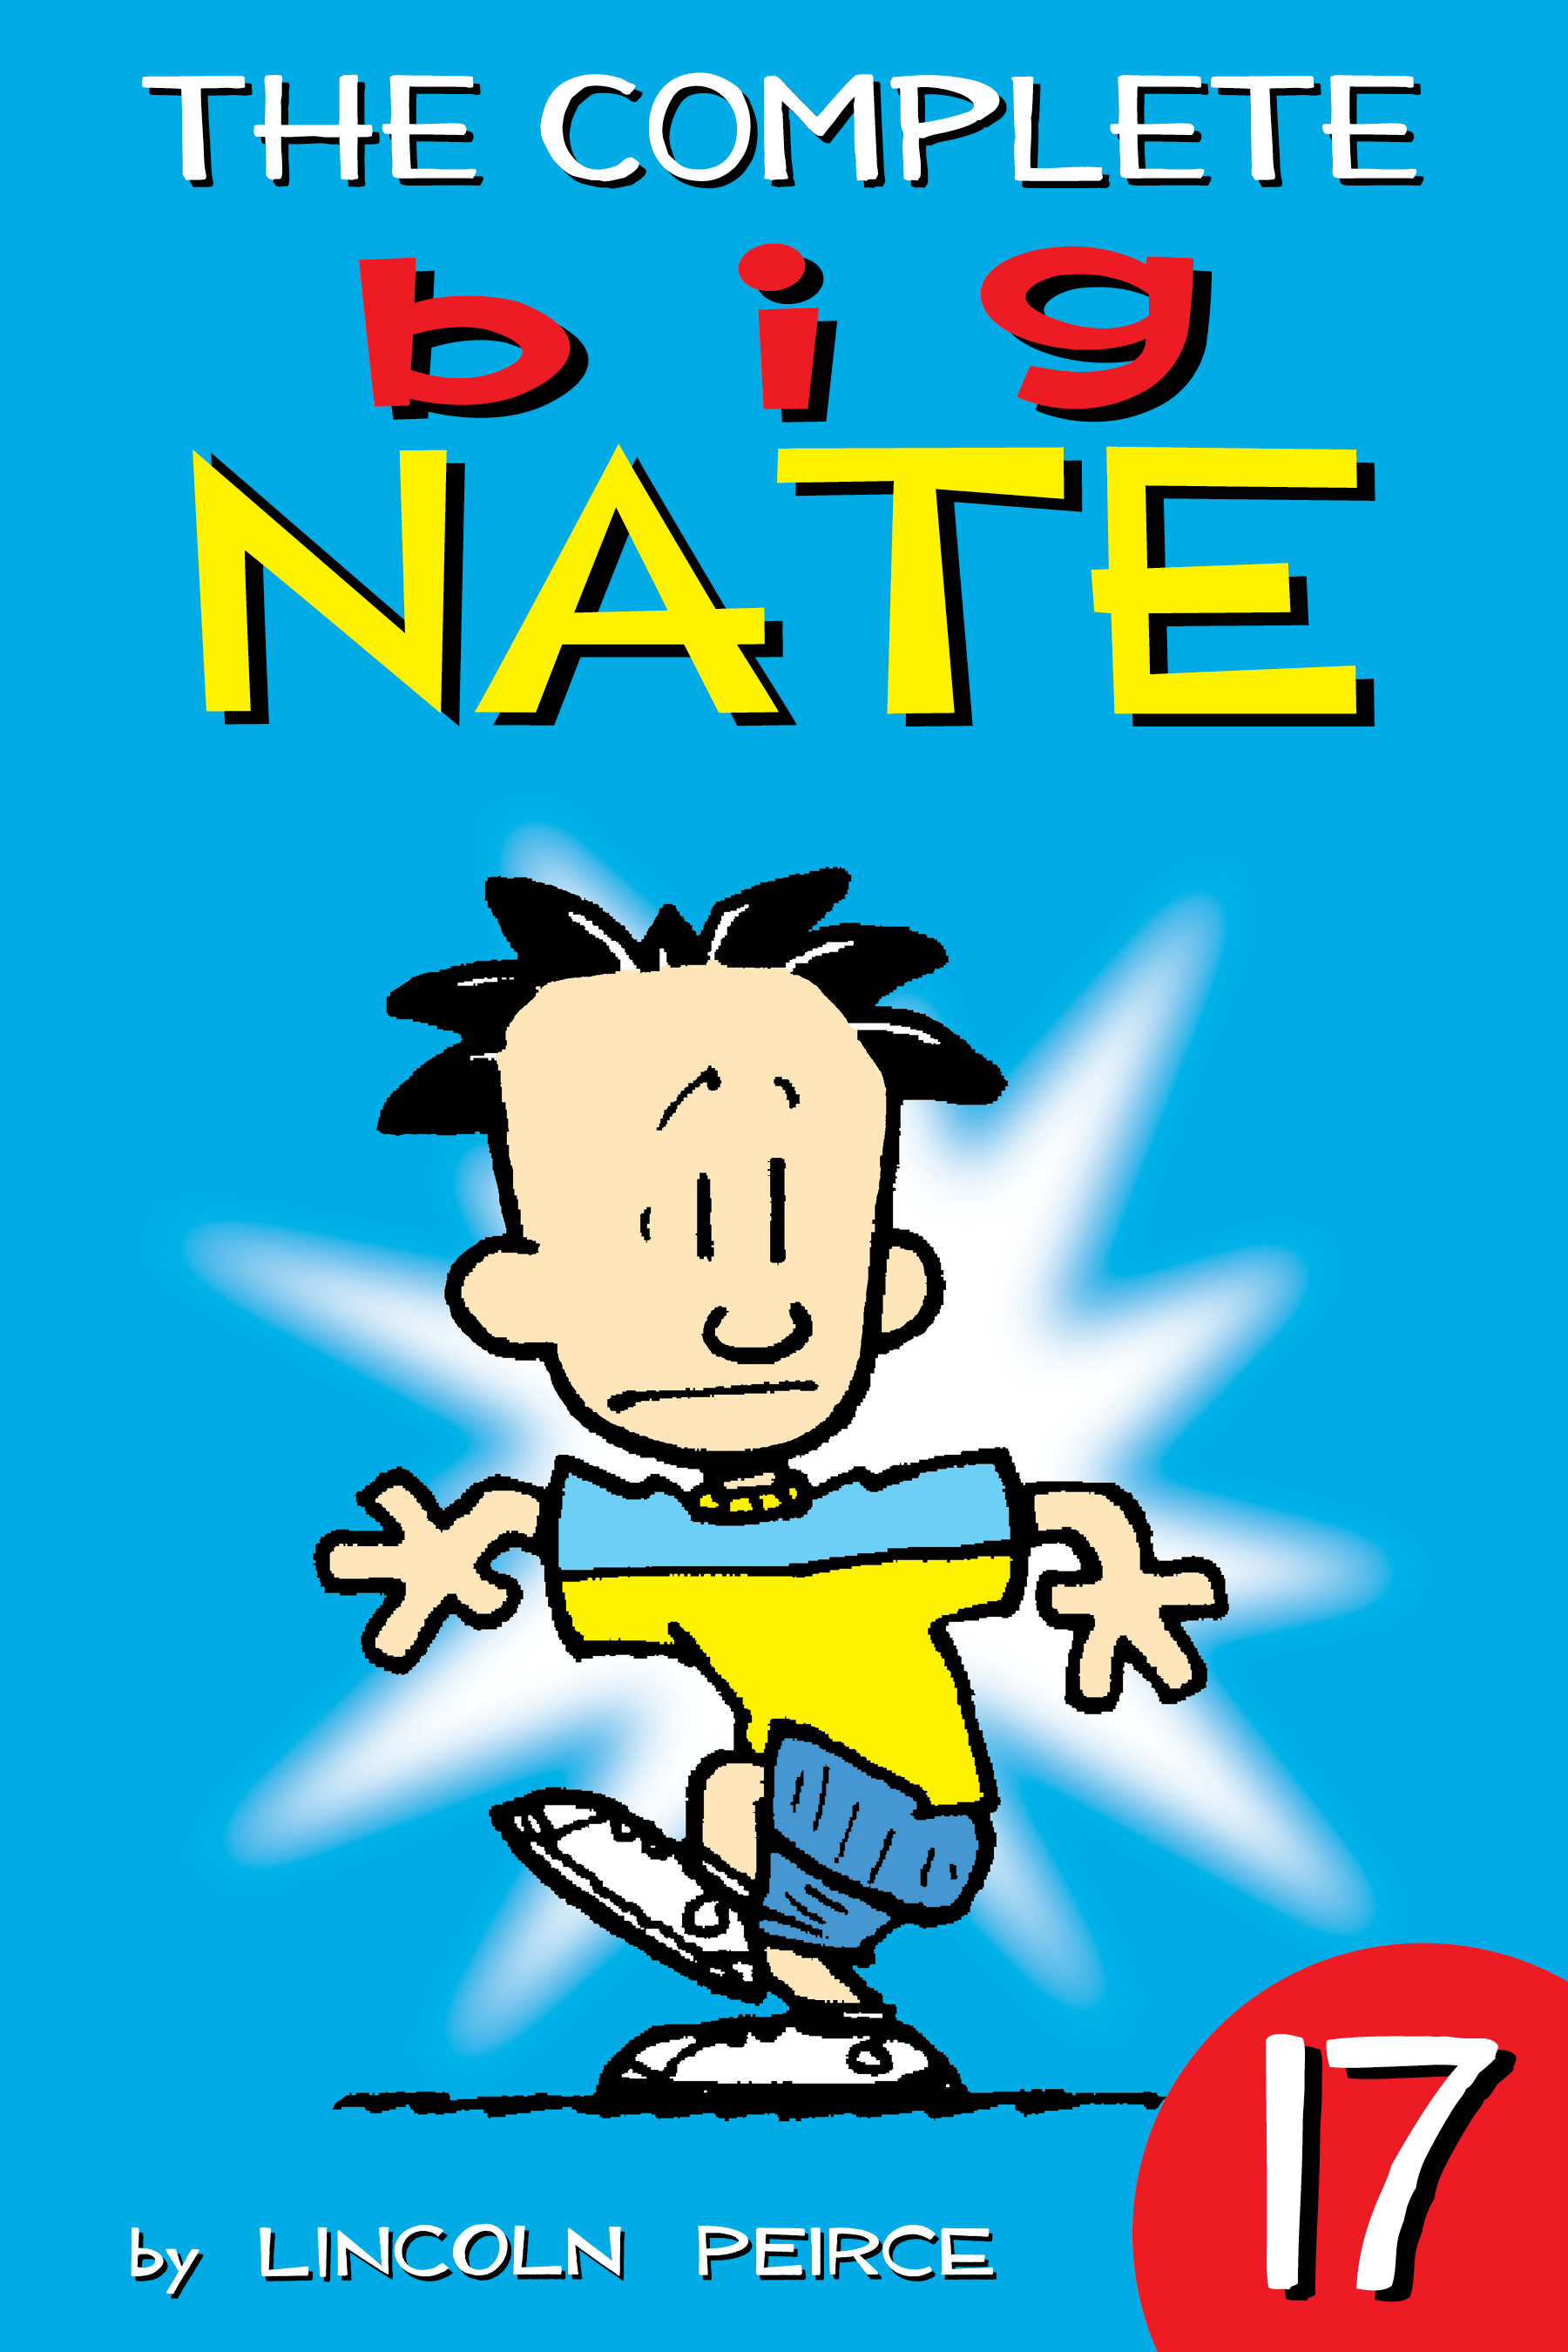 The Complete Big Nate 17 cover image